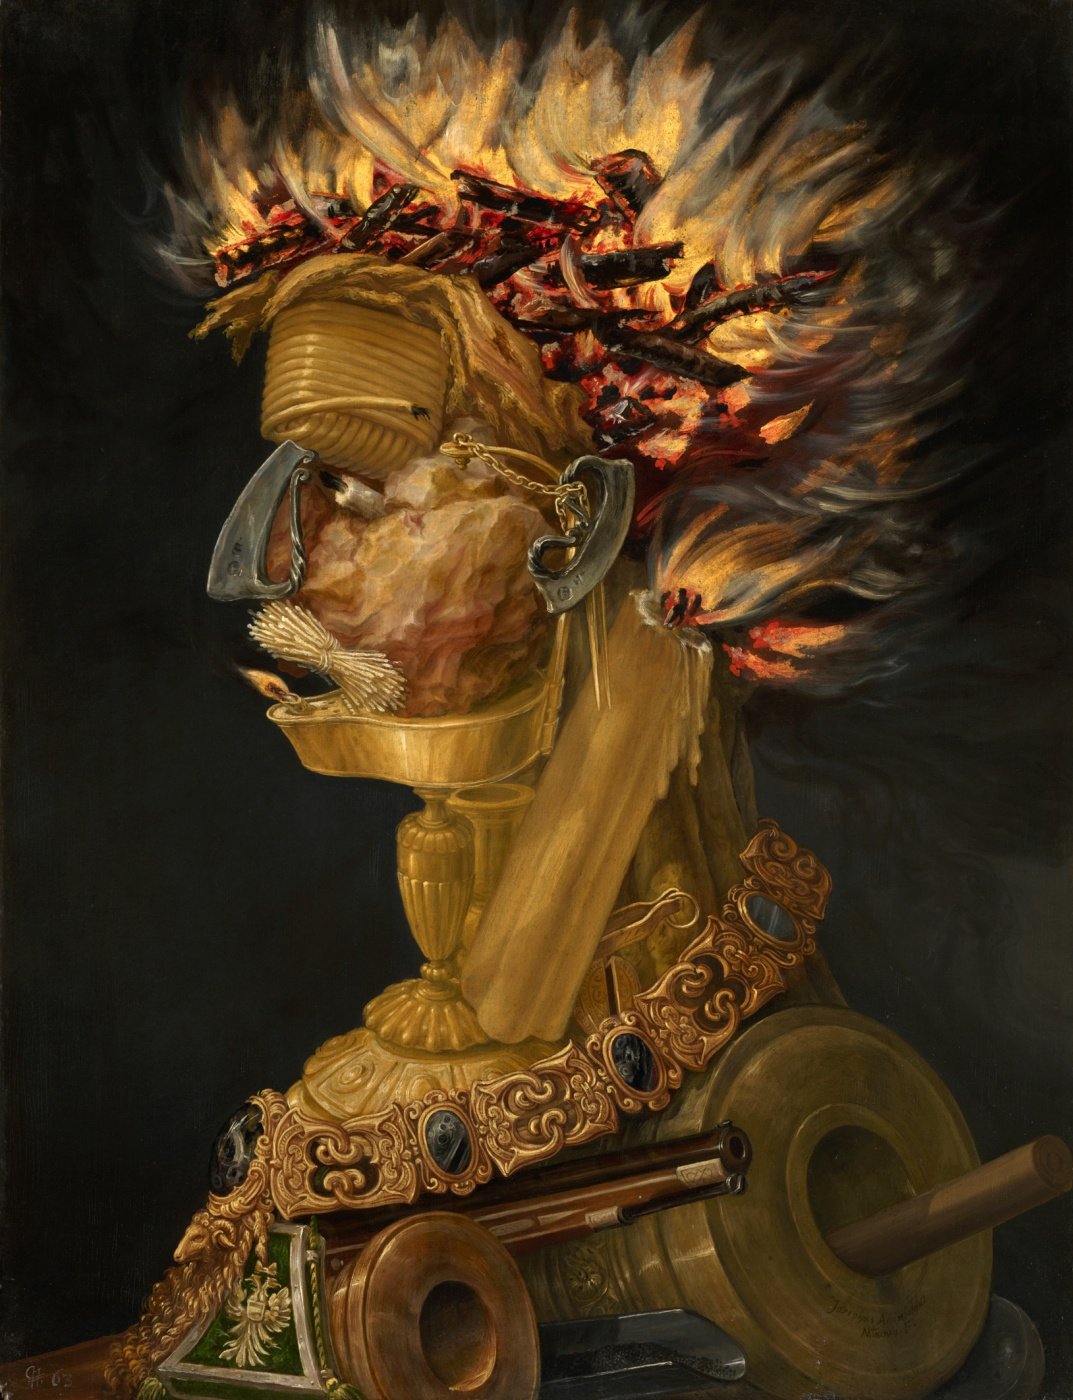 Giuseppe Arcimboldo. Four elements. Fire